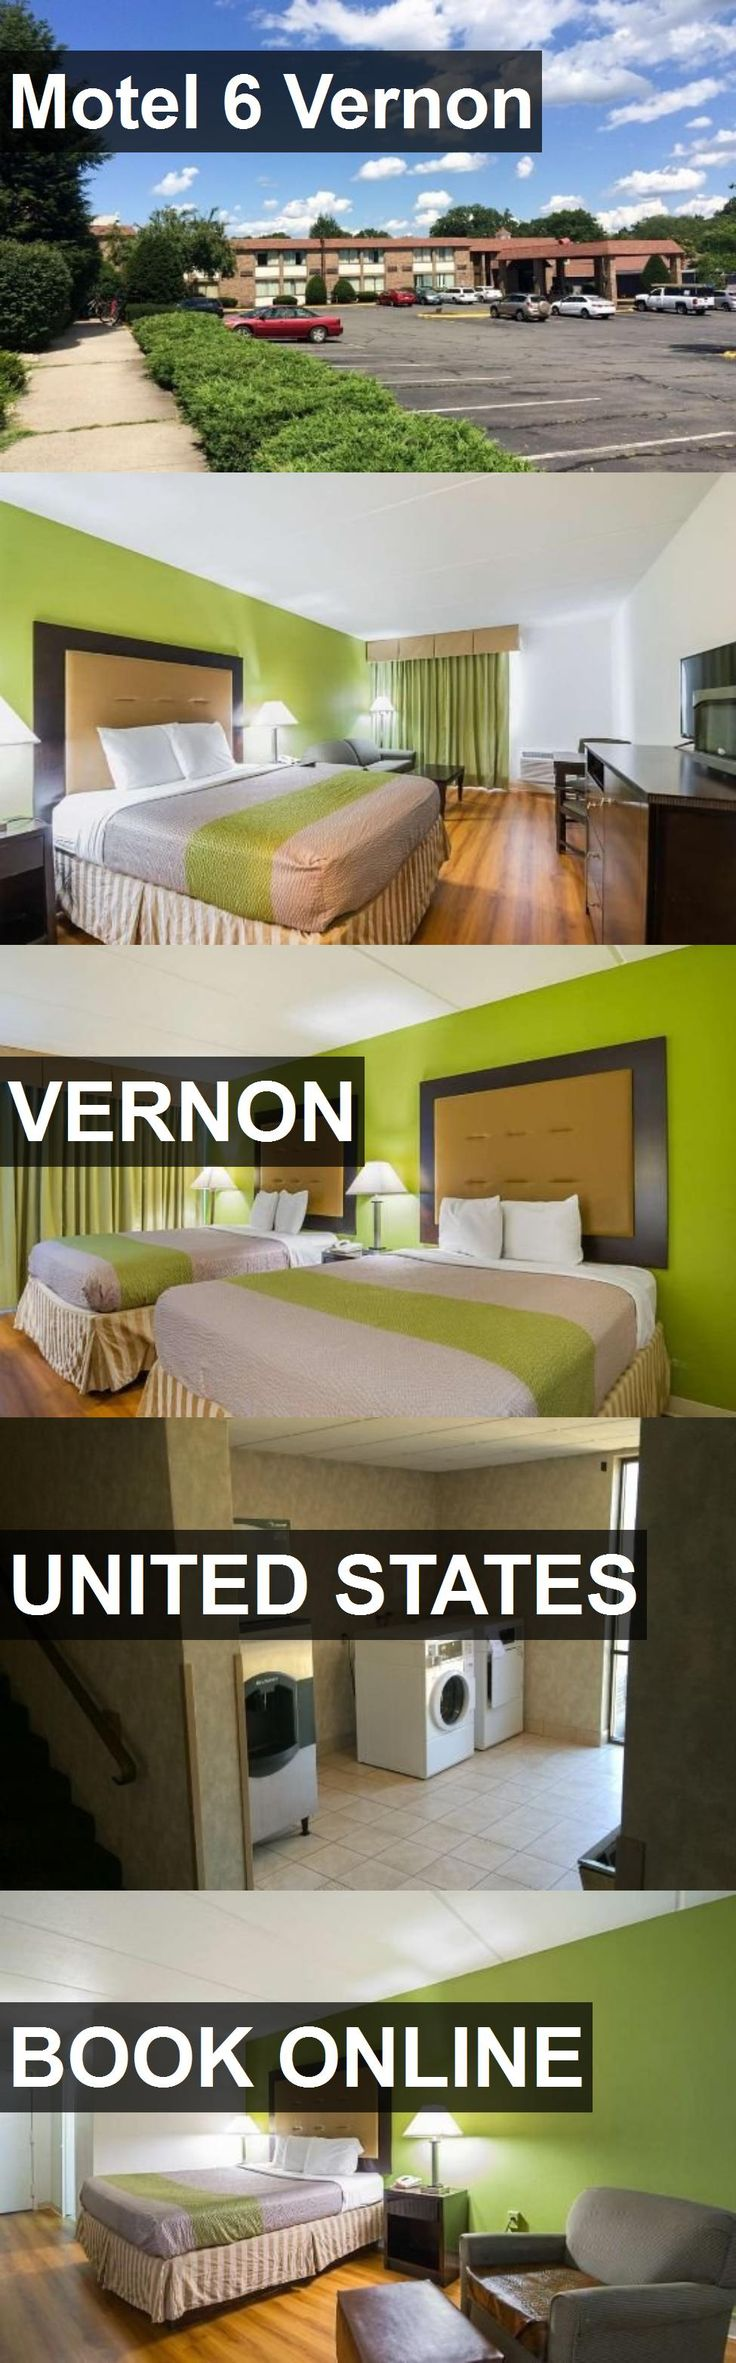 Hotel Motel 6 Vernon in Vernon, United States. For more information, photos, reviews and best prices please follow the link. #UnitedStates #Vernon #Motel6Vernon #hotel #travel #vacation